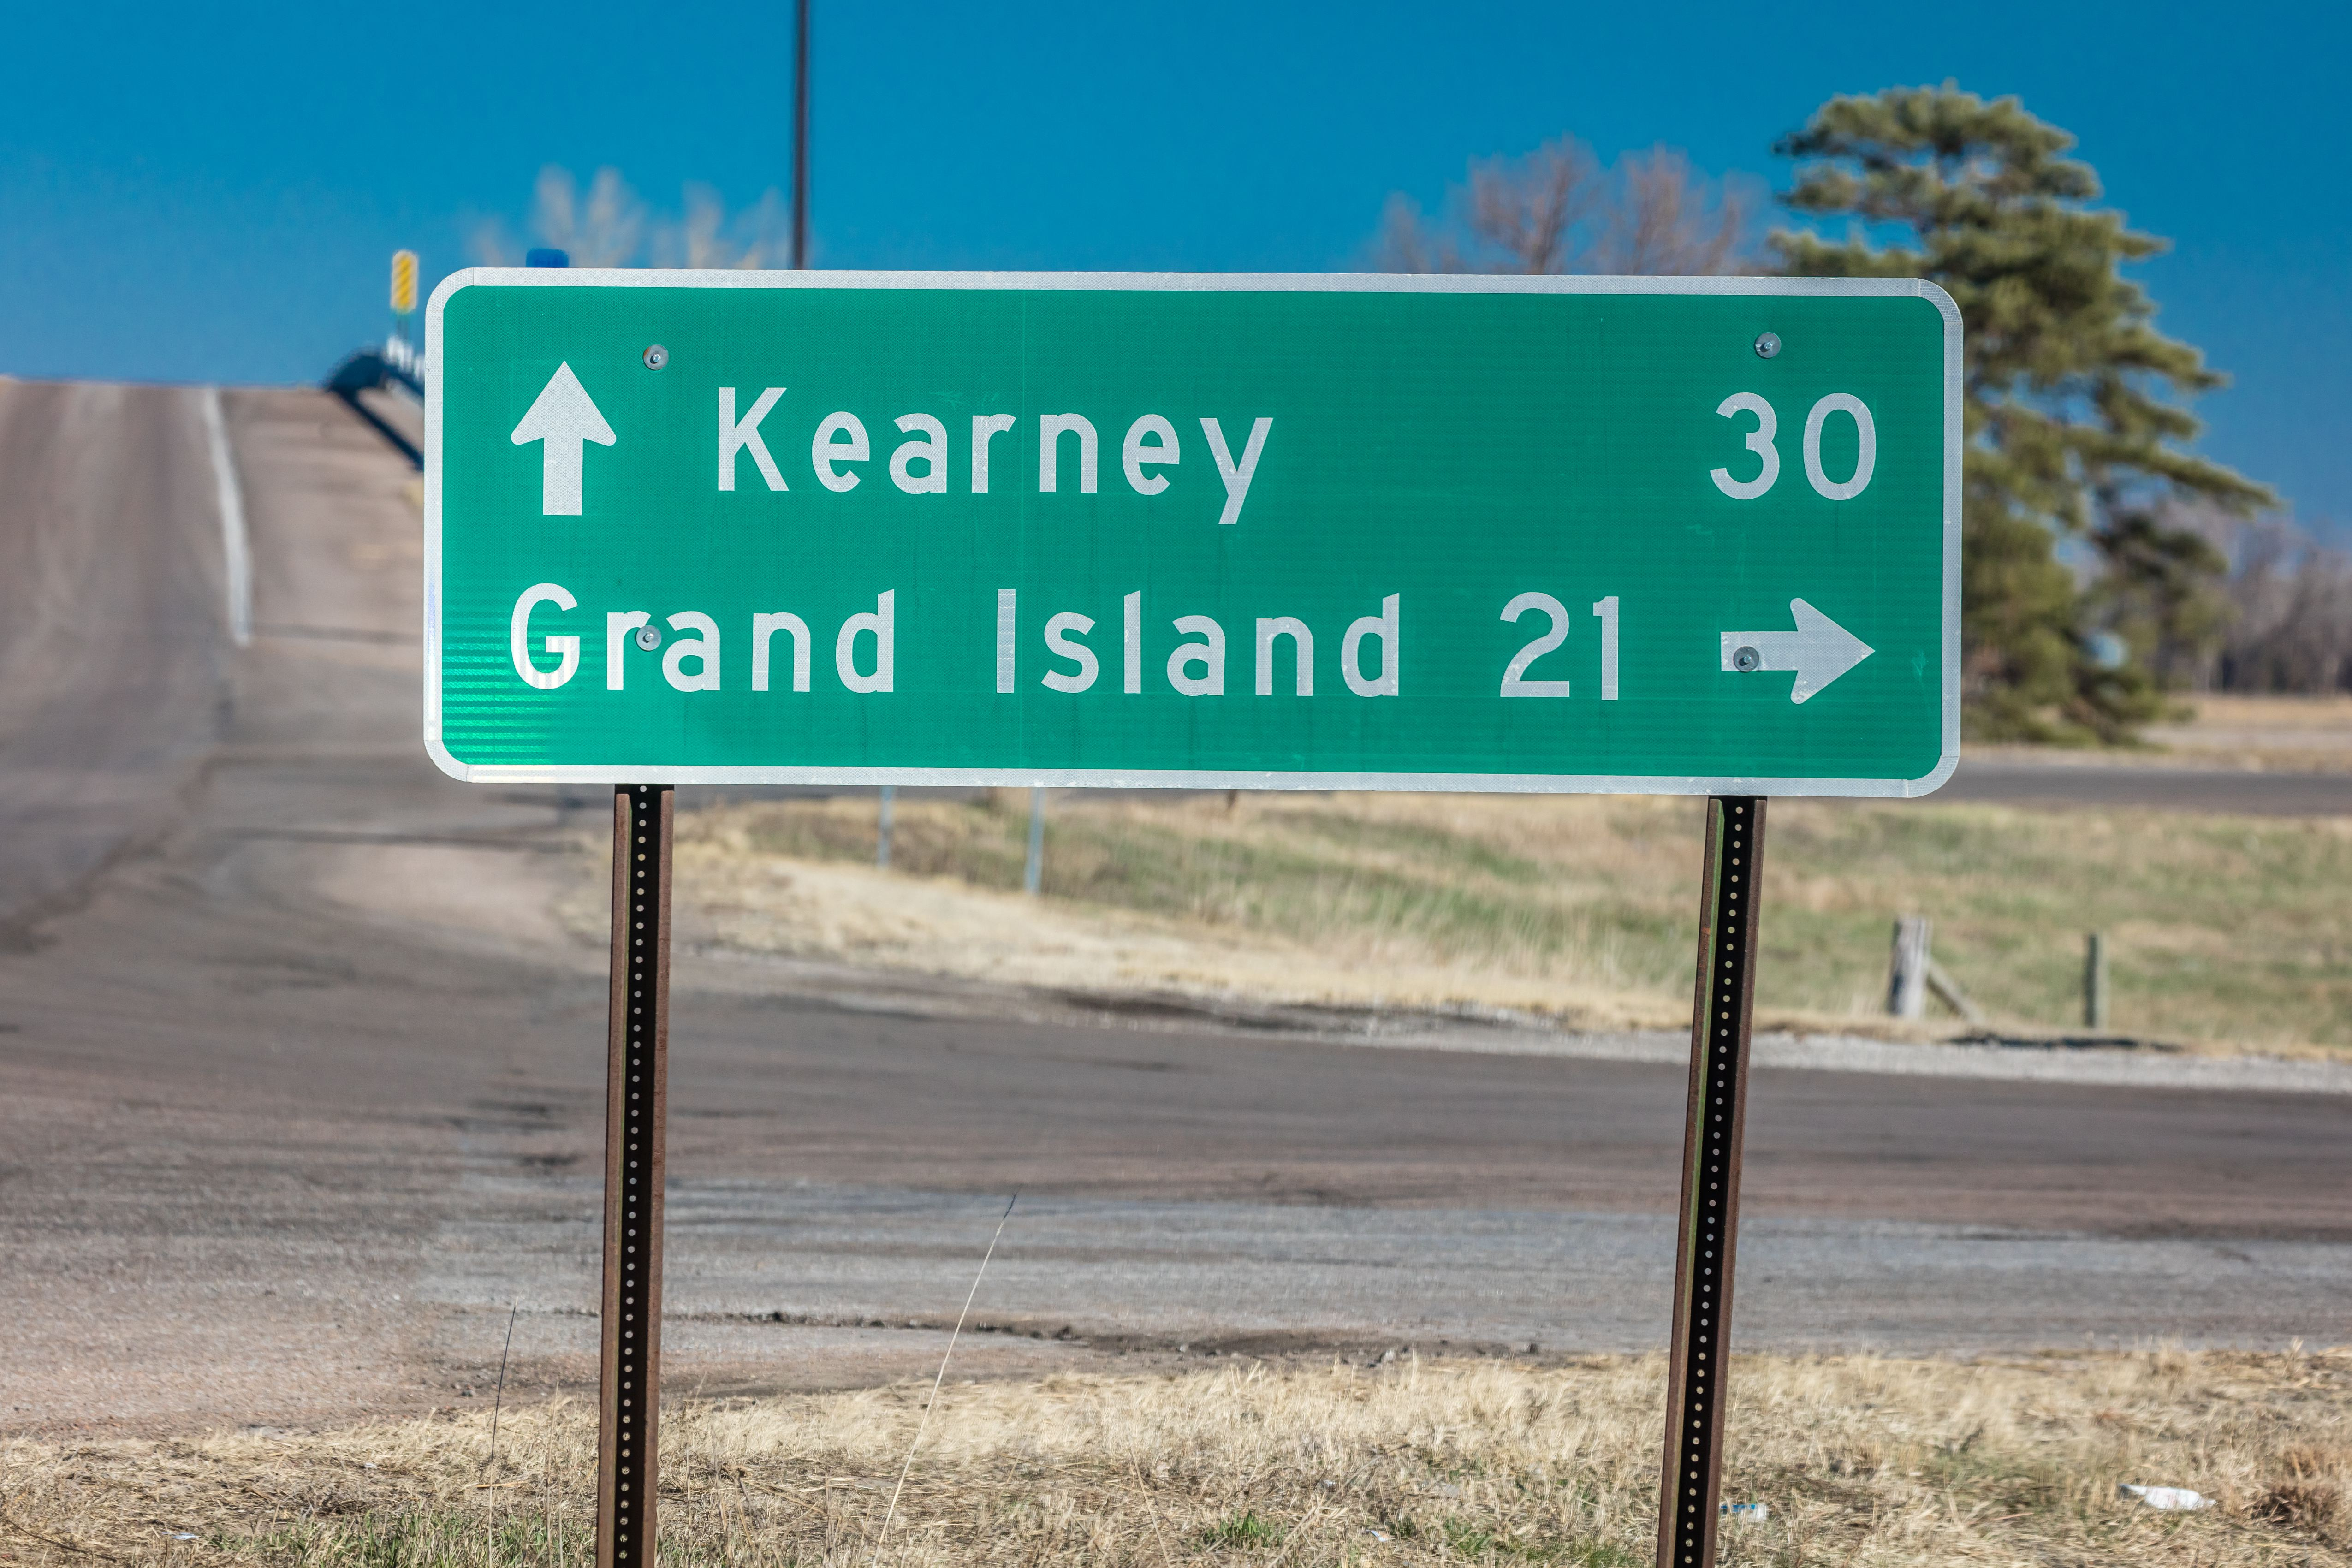 Sign pointing to Kearney and Grand Island Nebraska - Midwestern America, along Interstate Highway 80